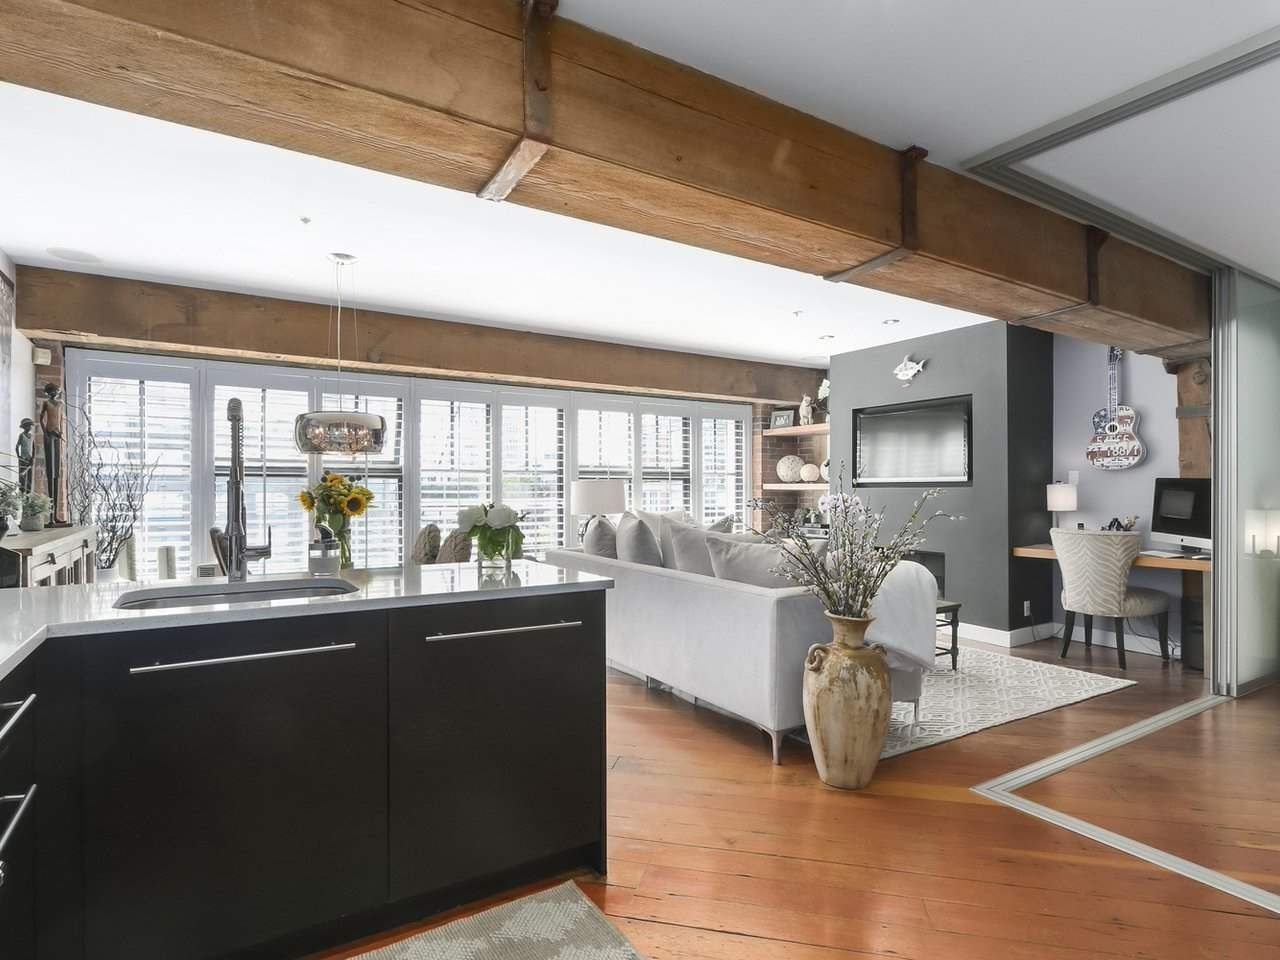 Main Photo: 308 1178 HAMILTON STREET in Vancouver: Yaletown Condo for sale (Vancouver West)  : MLS®# R2421669